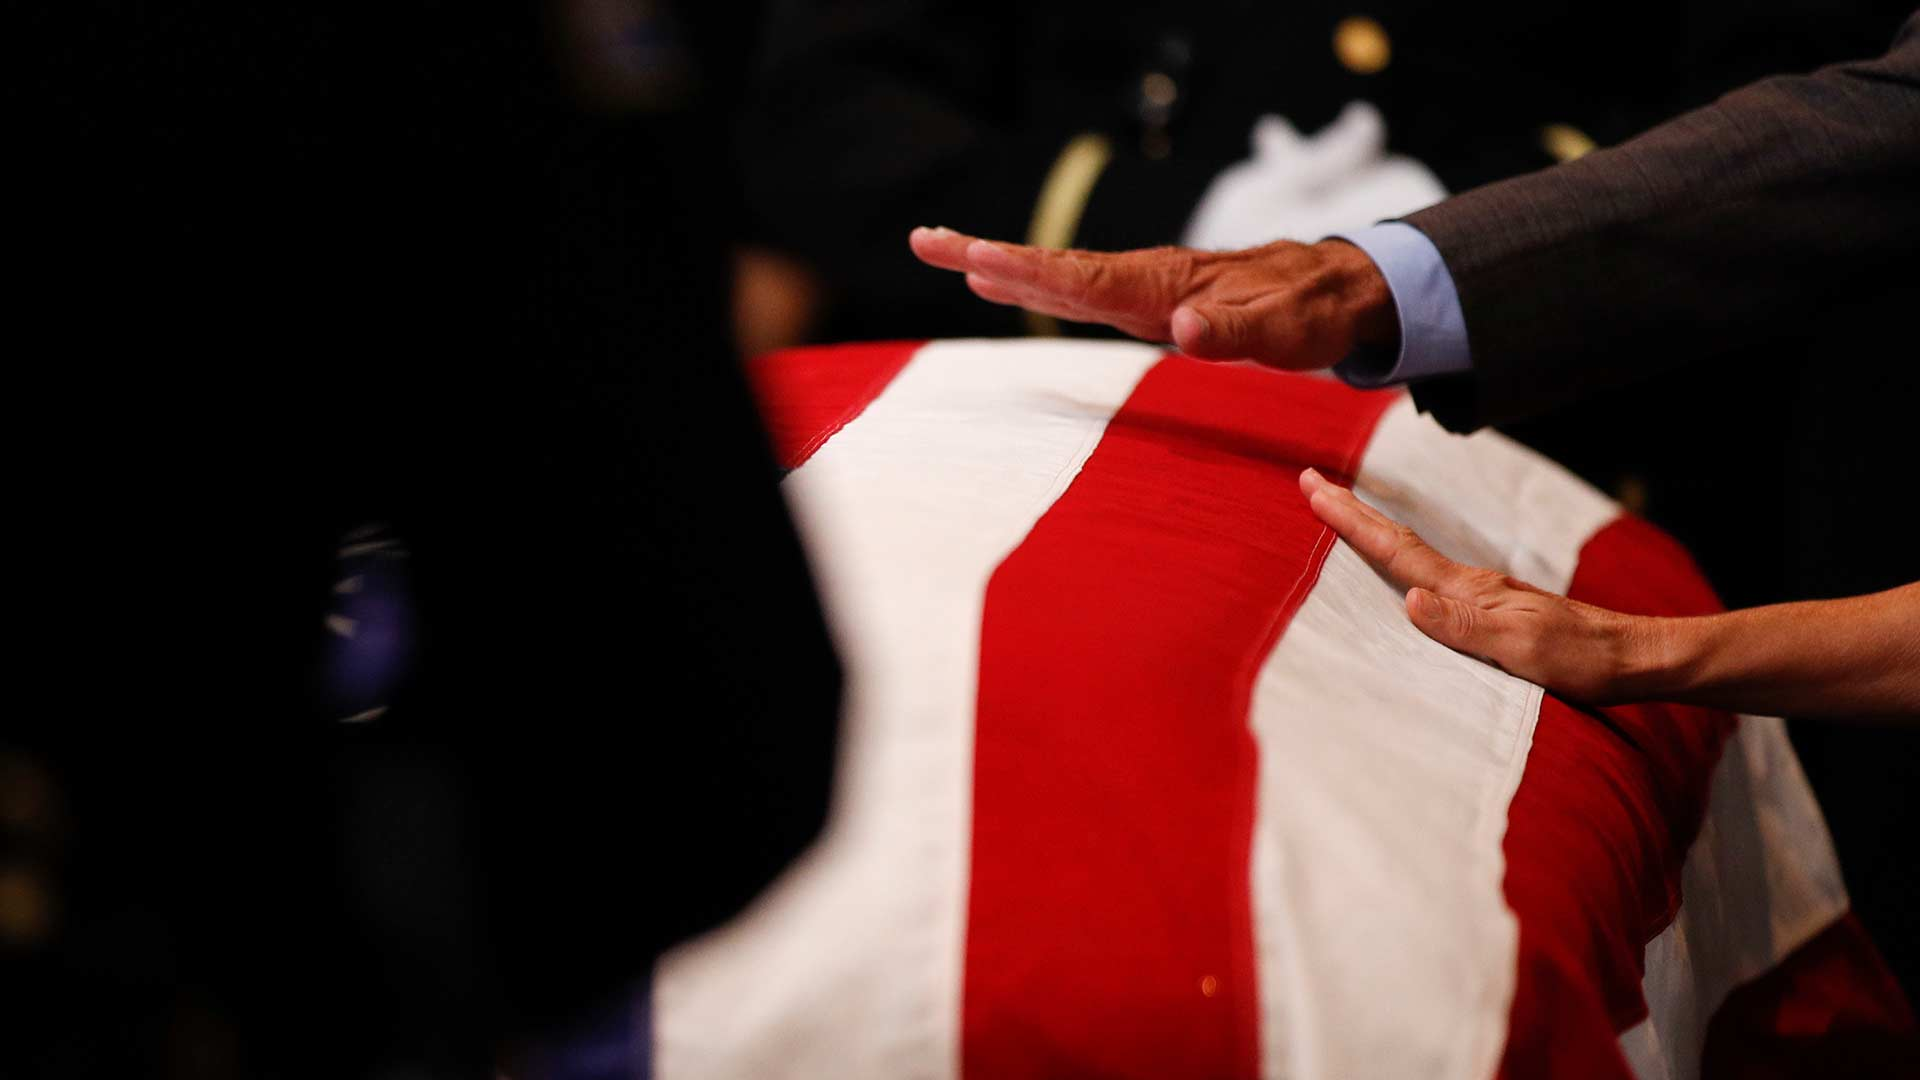 Mourners touch the casket during a memorial service for Sen. John McCain, R-Ariz. at the Arizona Capitol on Wednesday, Aug. 29, 2018, in Phoenix.